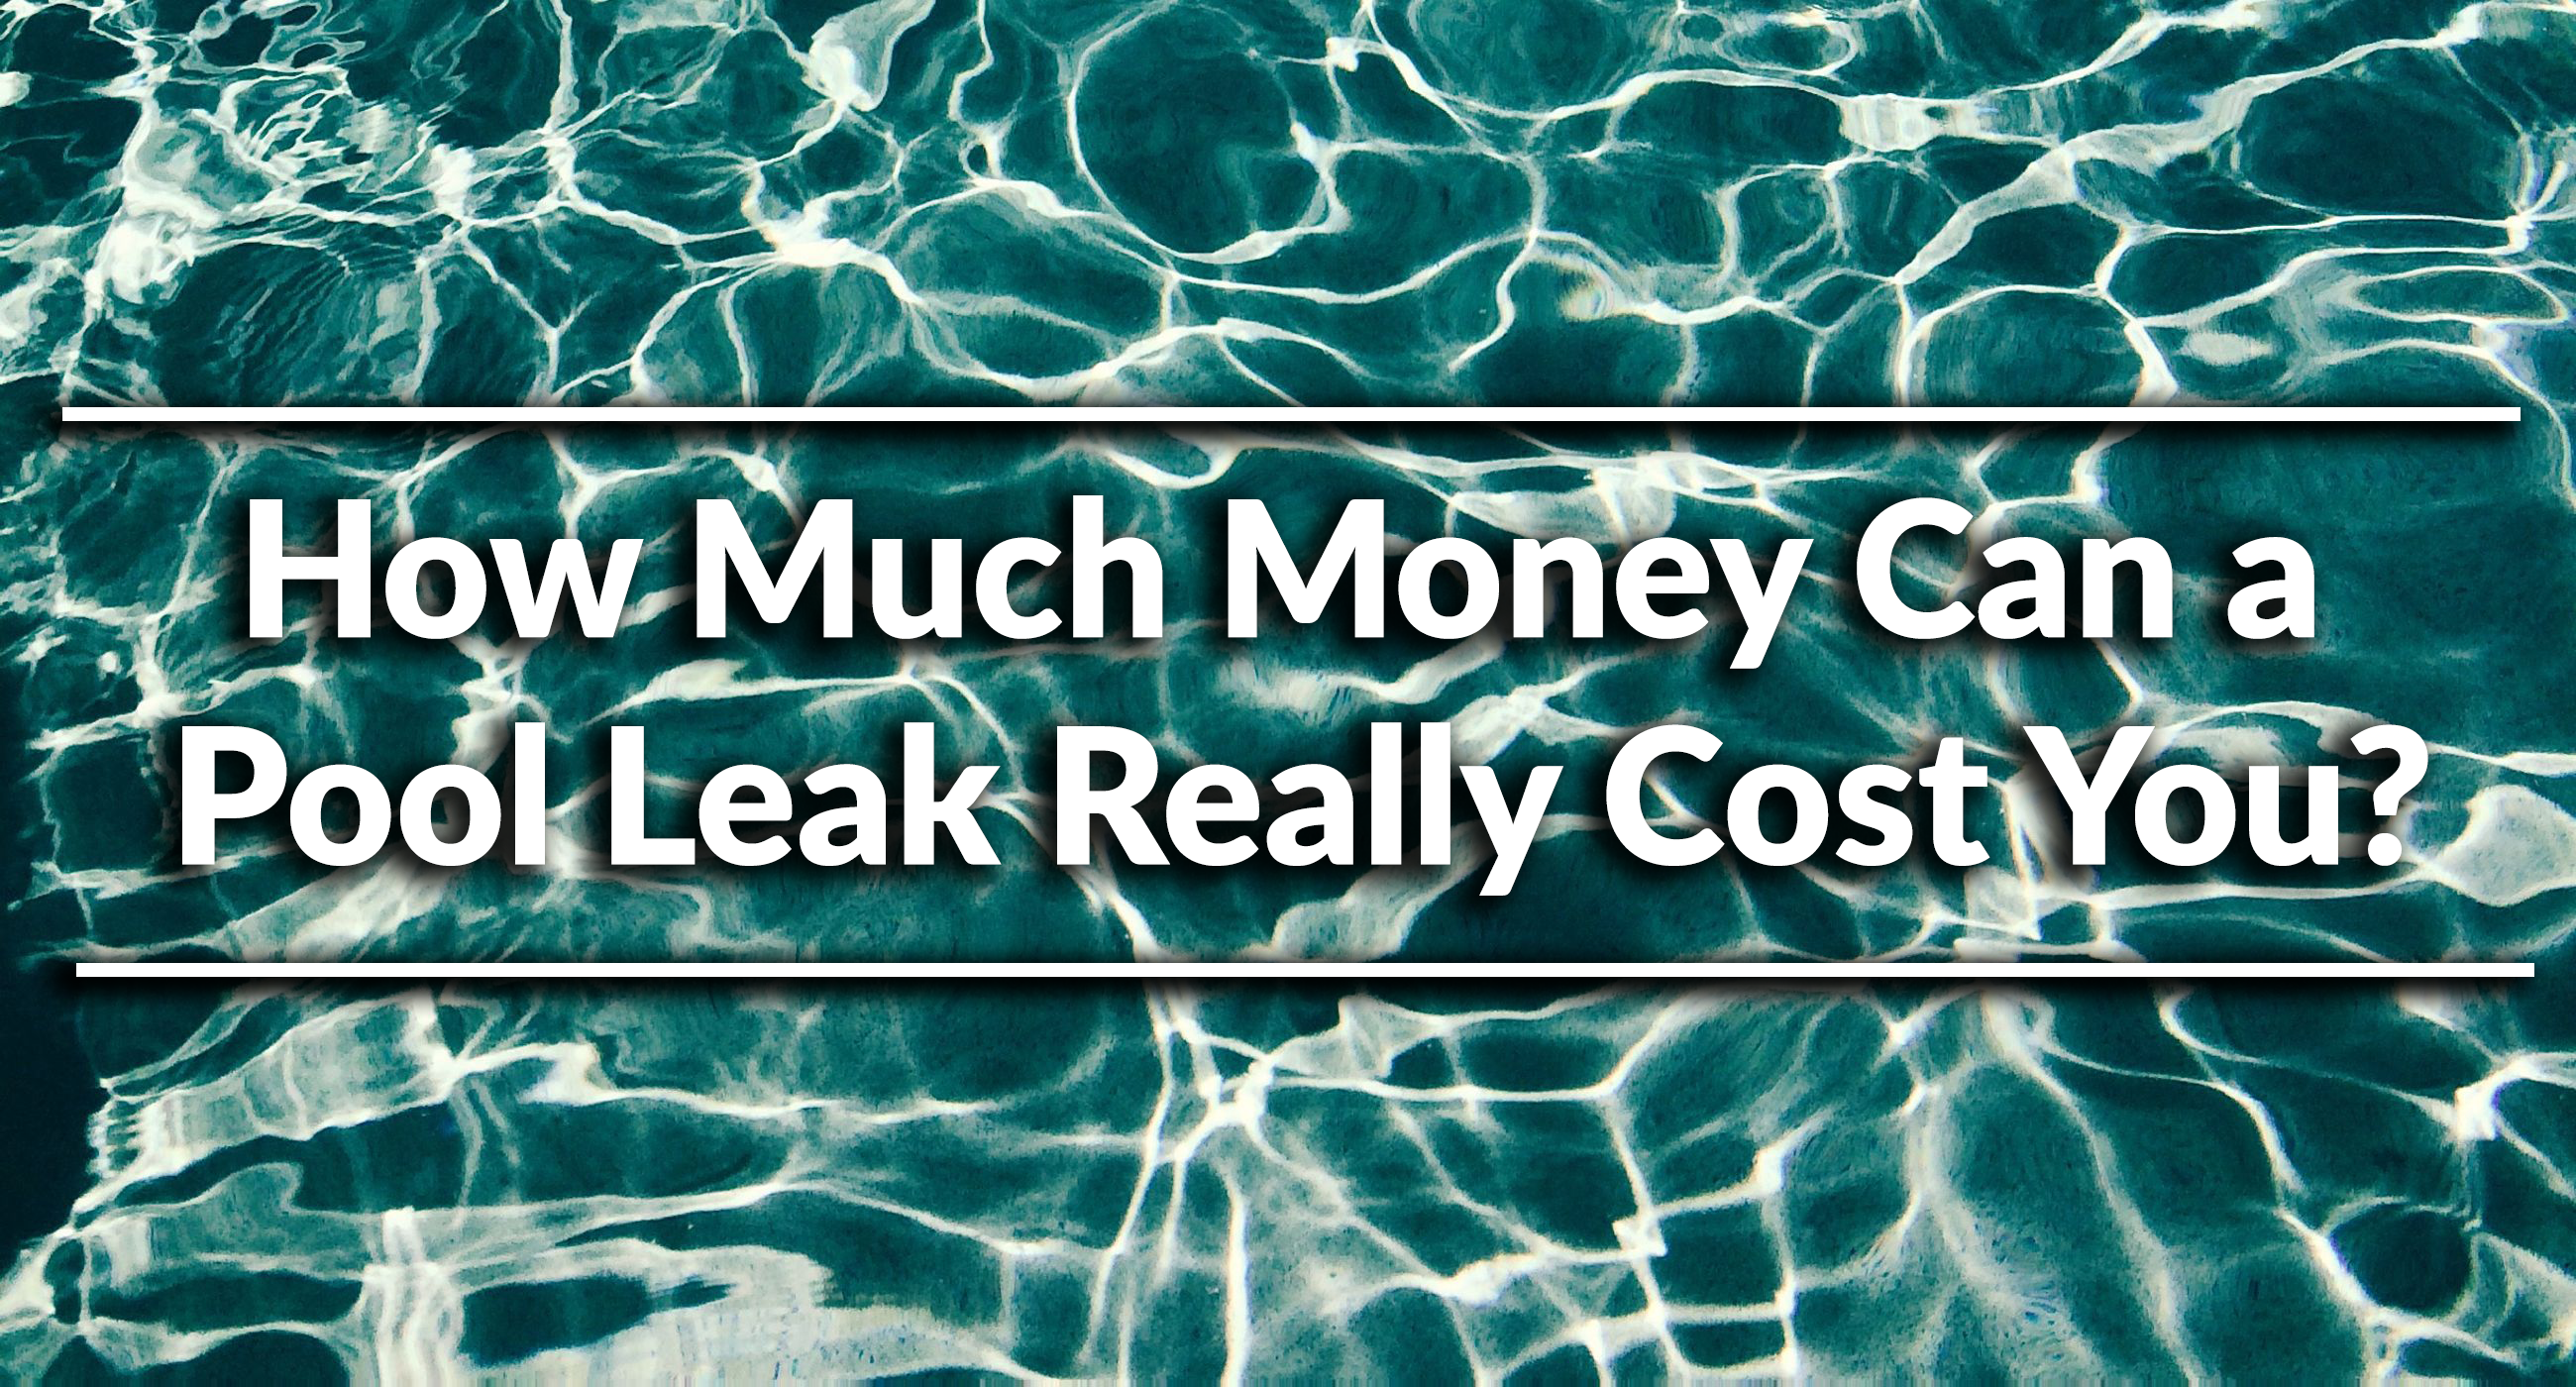 How Much Money Can A Pool Leak Really Cost You